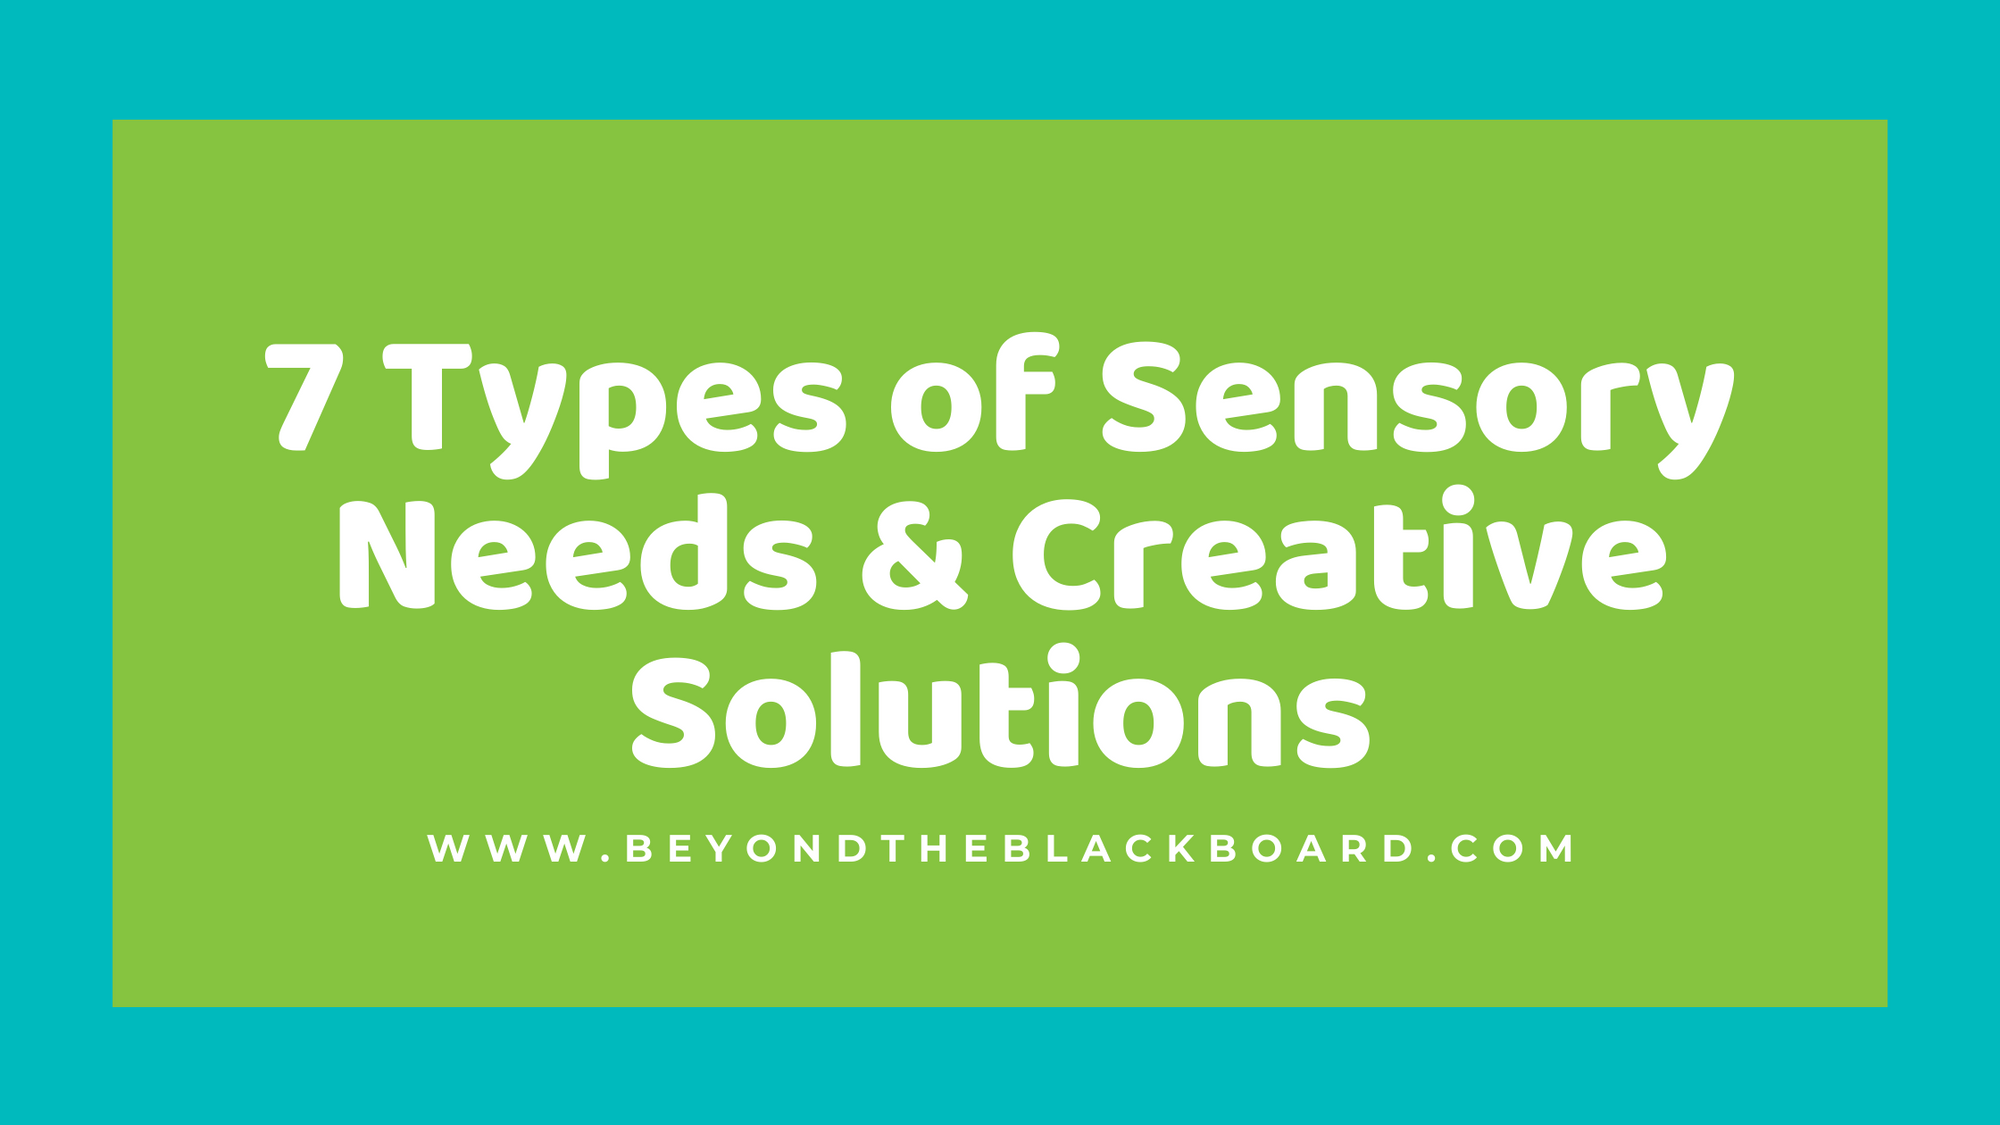 7 Types of Sensory Needs & Creative Solutions; www.beyondtheblackboard.com